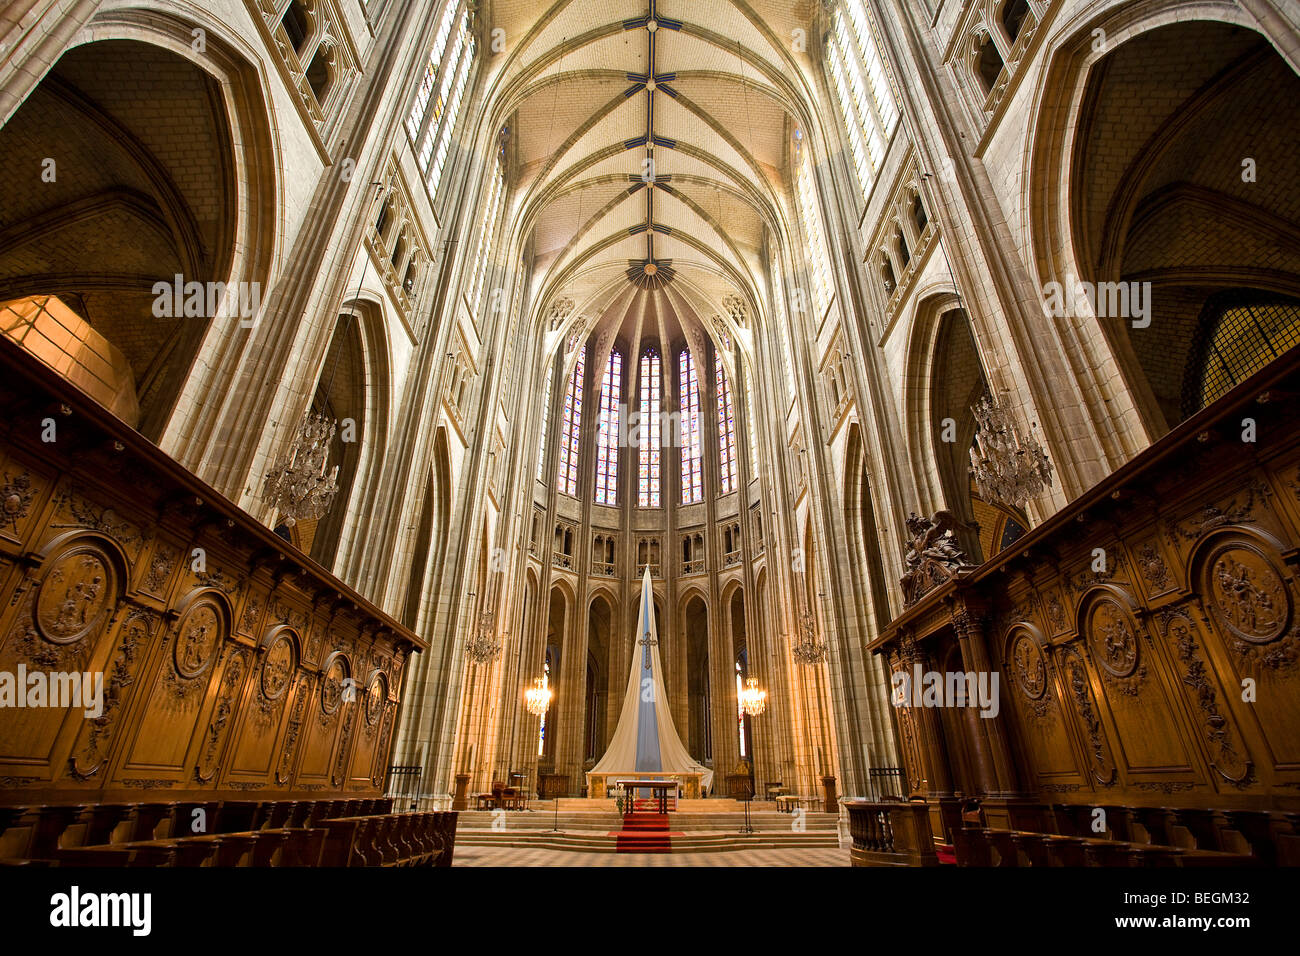 SAINTE-CROIX CATHEDRAL, ORLEANS - Stock Image